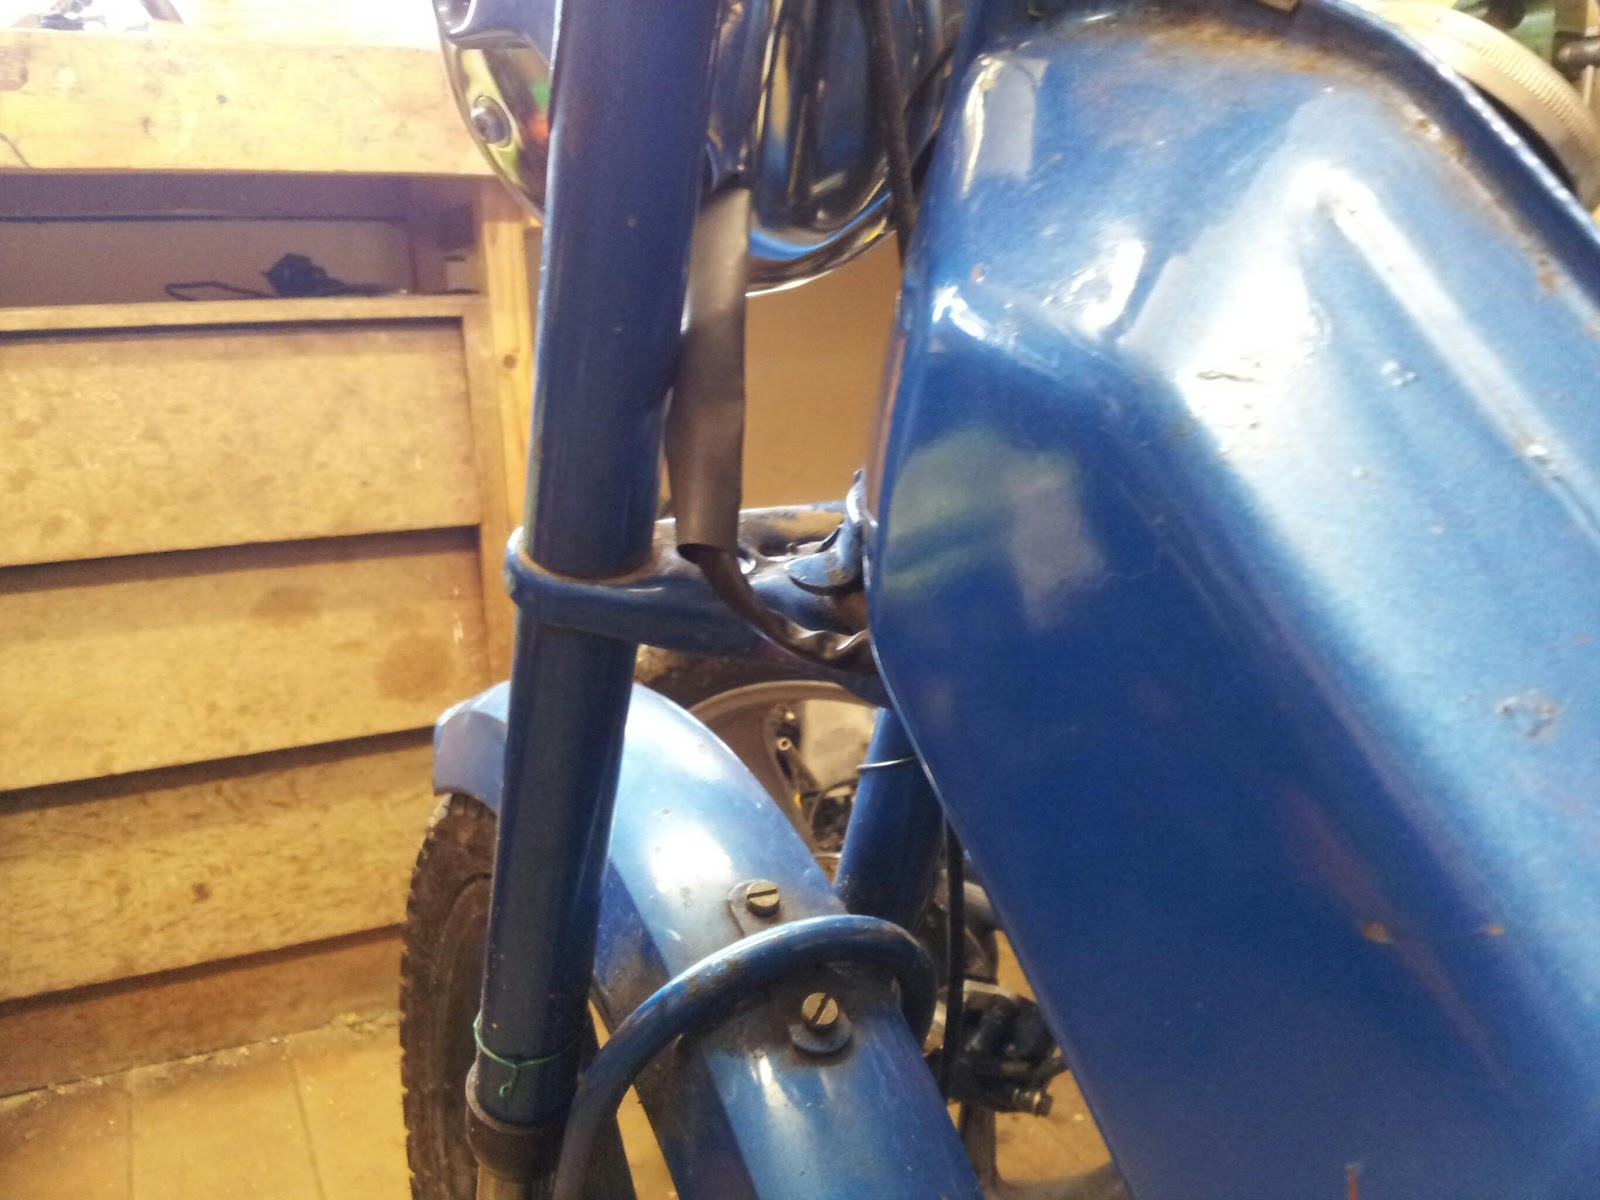 mopeds at dawn tomos re wiring. Black Bedroom Furniture Sets. Home Design Ideas